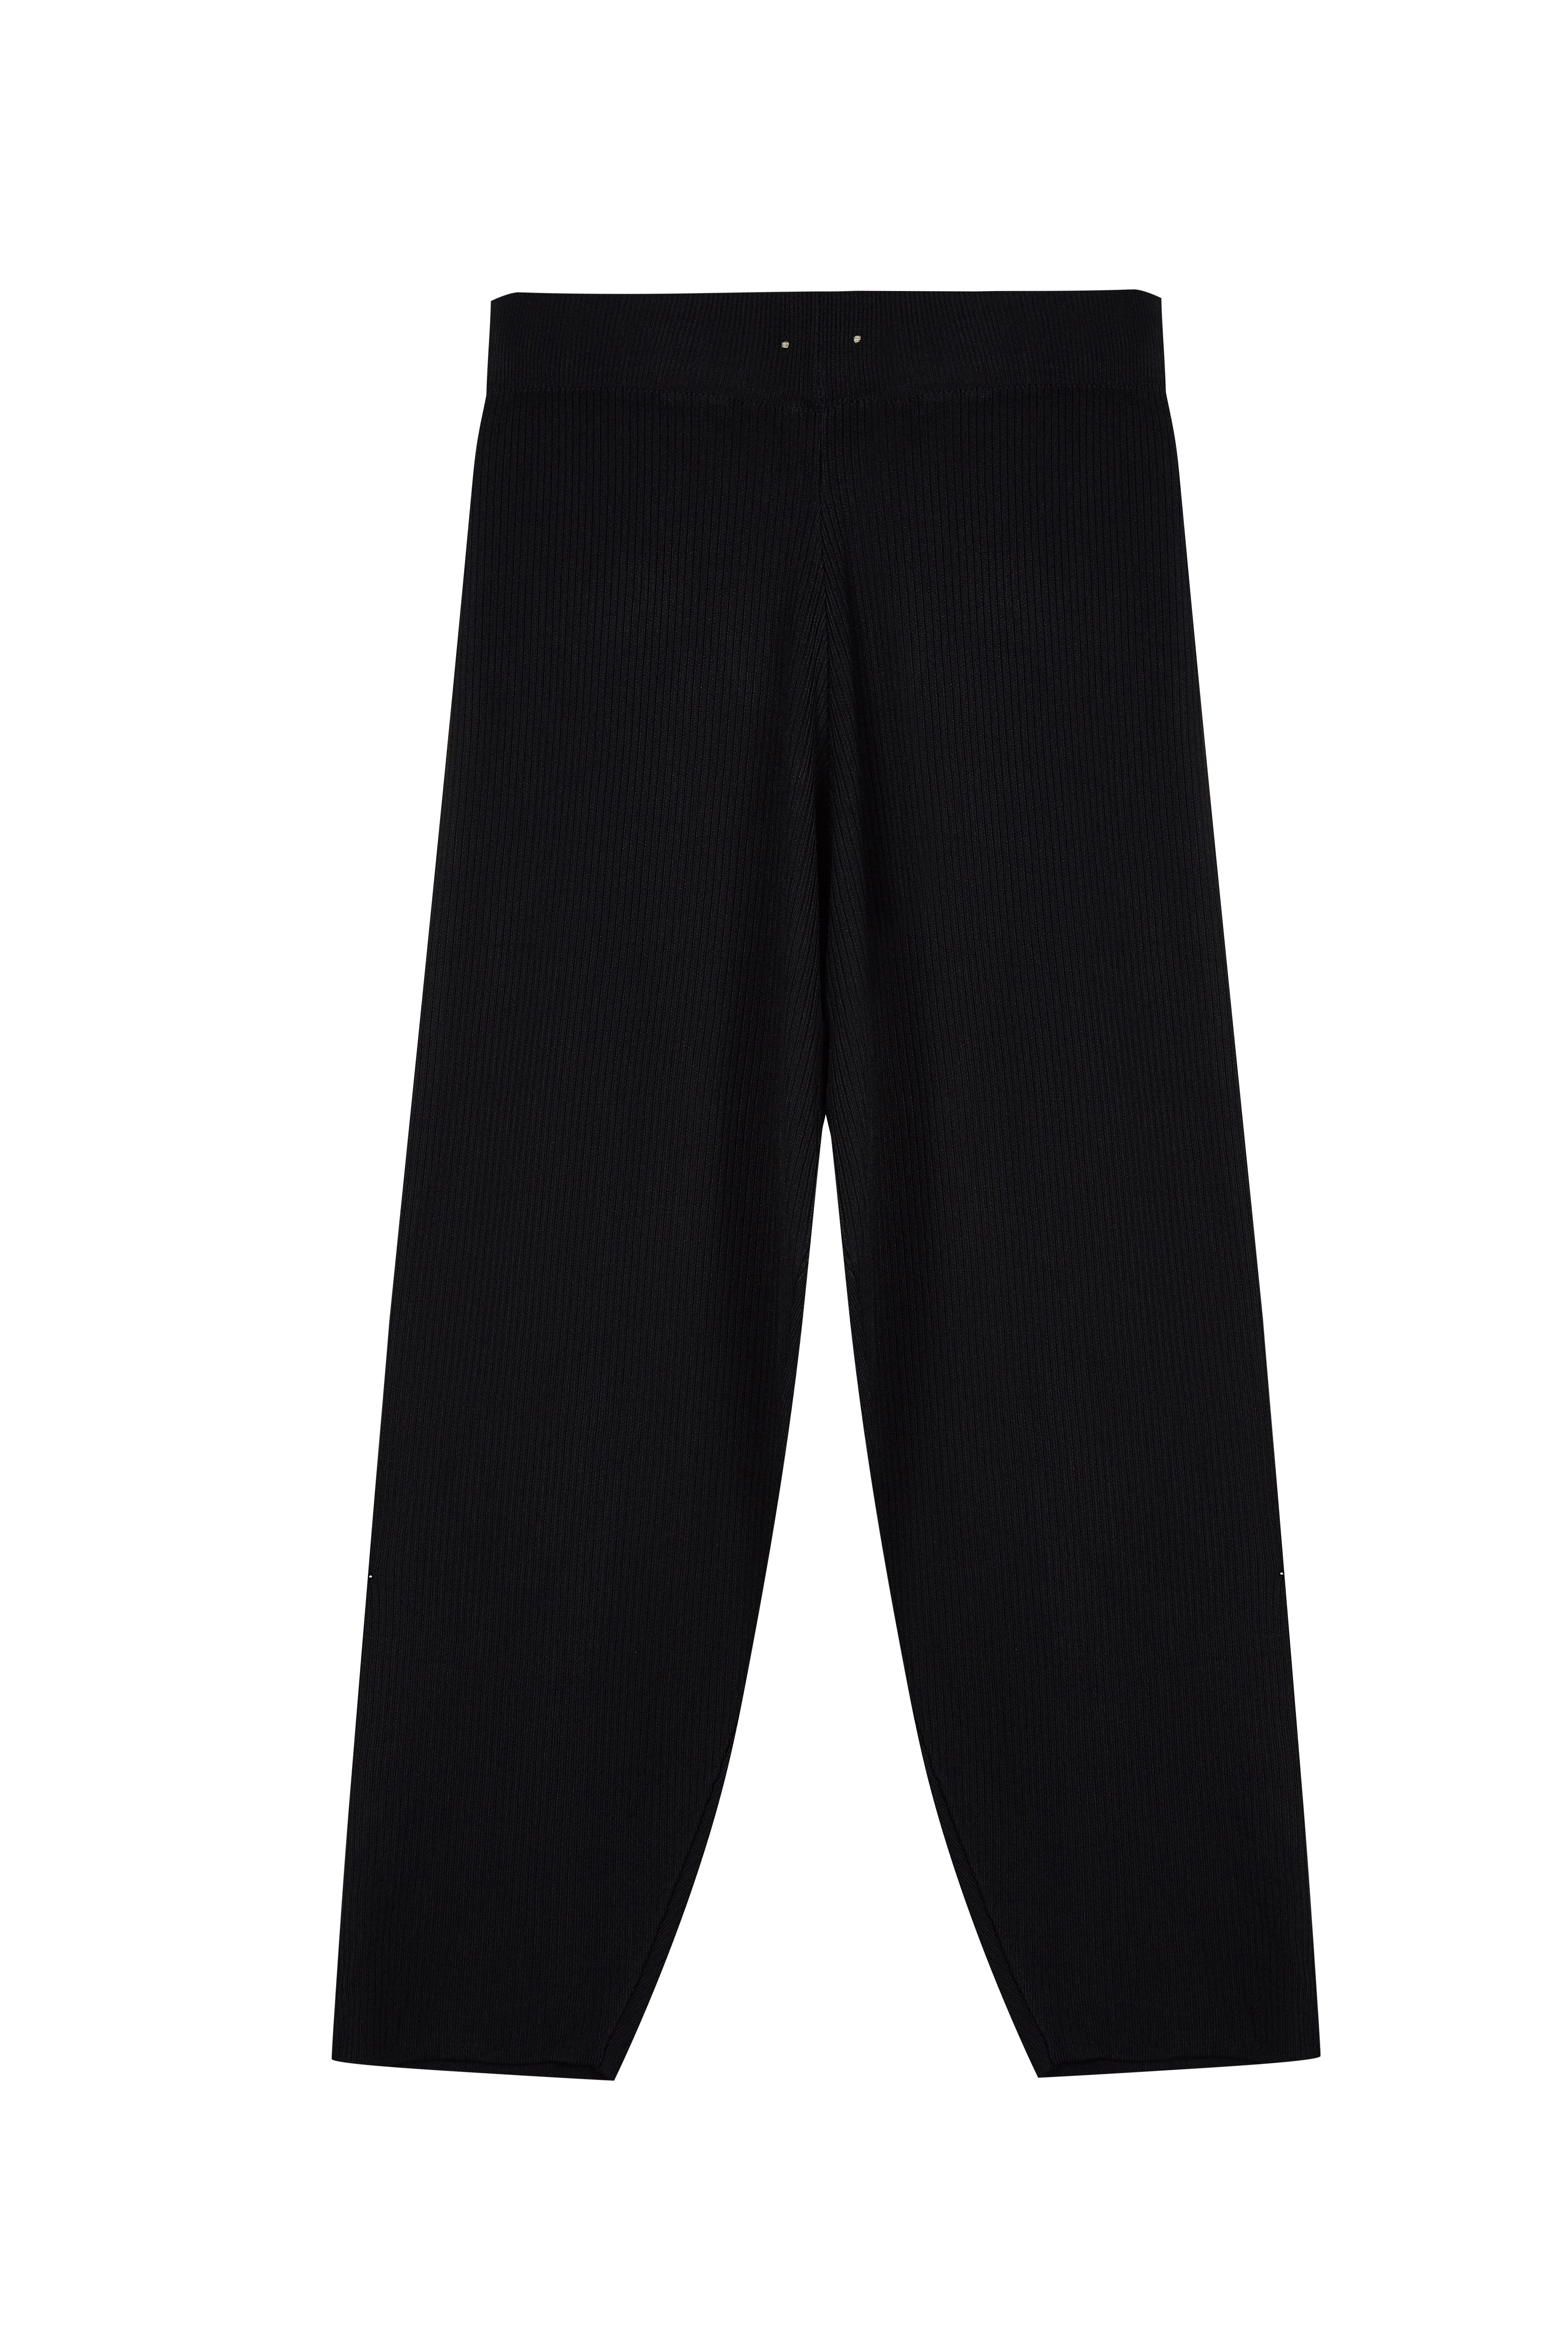 Women's Elastic Waist Wide Pants Ribbed Knit Trousers